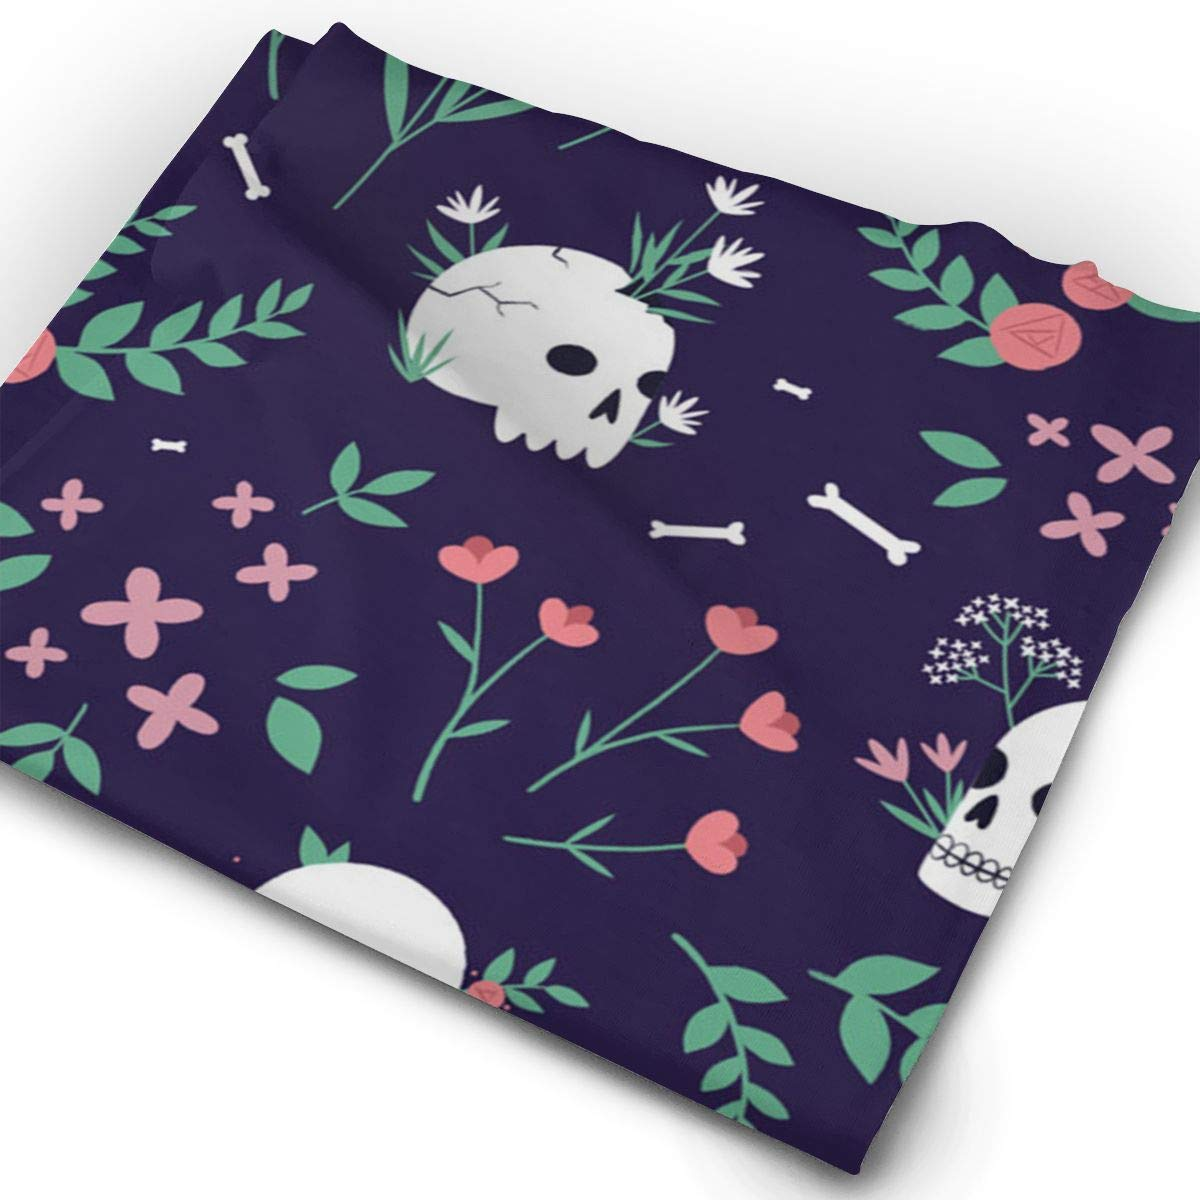 Skull Floral Unisex Fashion Quick-Drying Microfiber Headdress Outdoor Magic Scarf Neck Neck Scarf Hooded Scarf Super Soft Handle